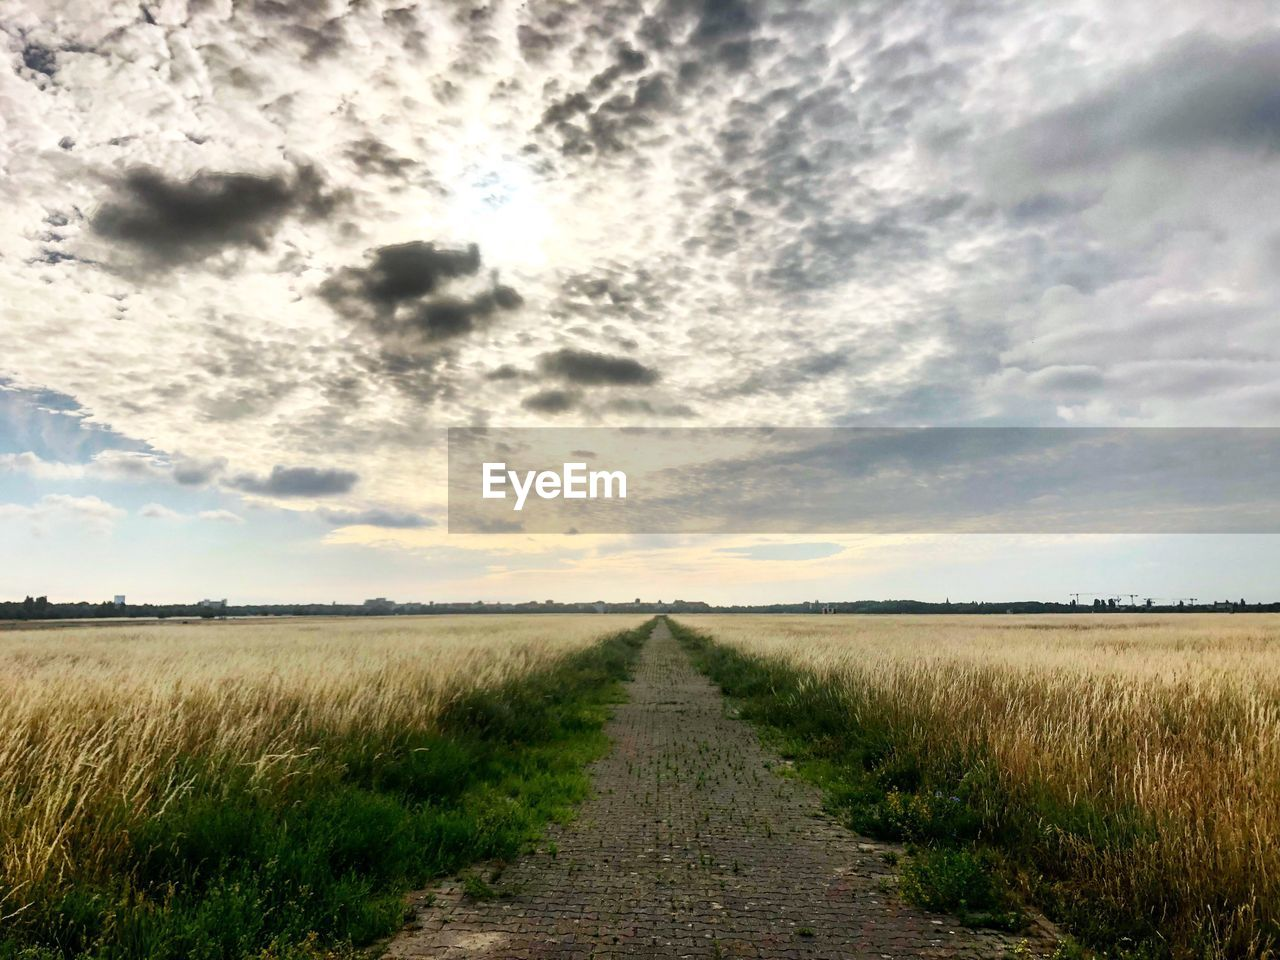 sky, cloud - sky, landscape, land, the way forward, tranquility, field, environment, tranquil scene, direction, grass, beauty in nature, nature, scenics - nature, plant, no people, road, vanishing point, rural scene, diminishing perspective, outdoors, long